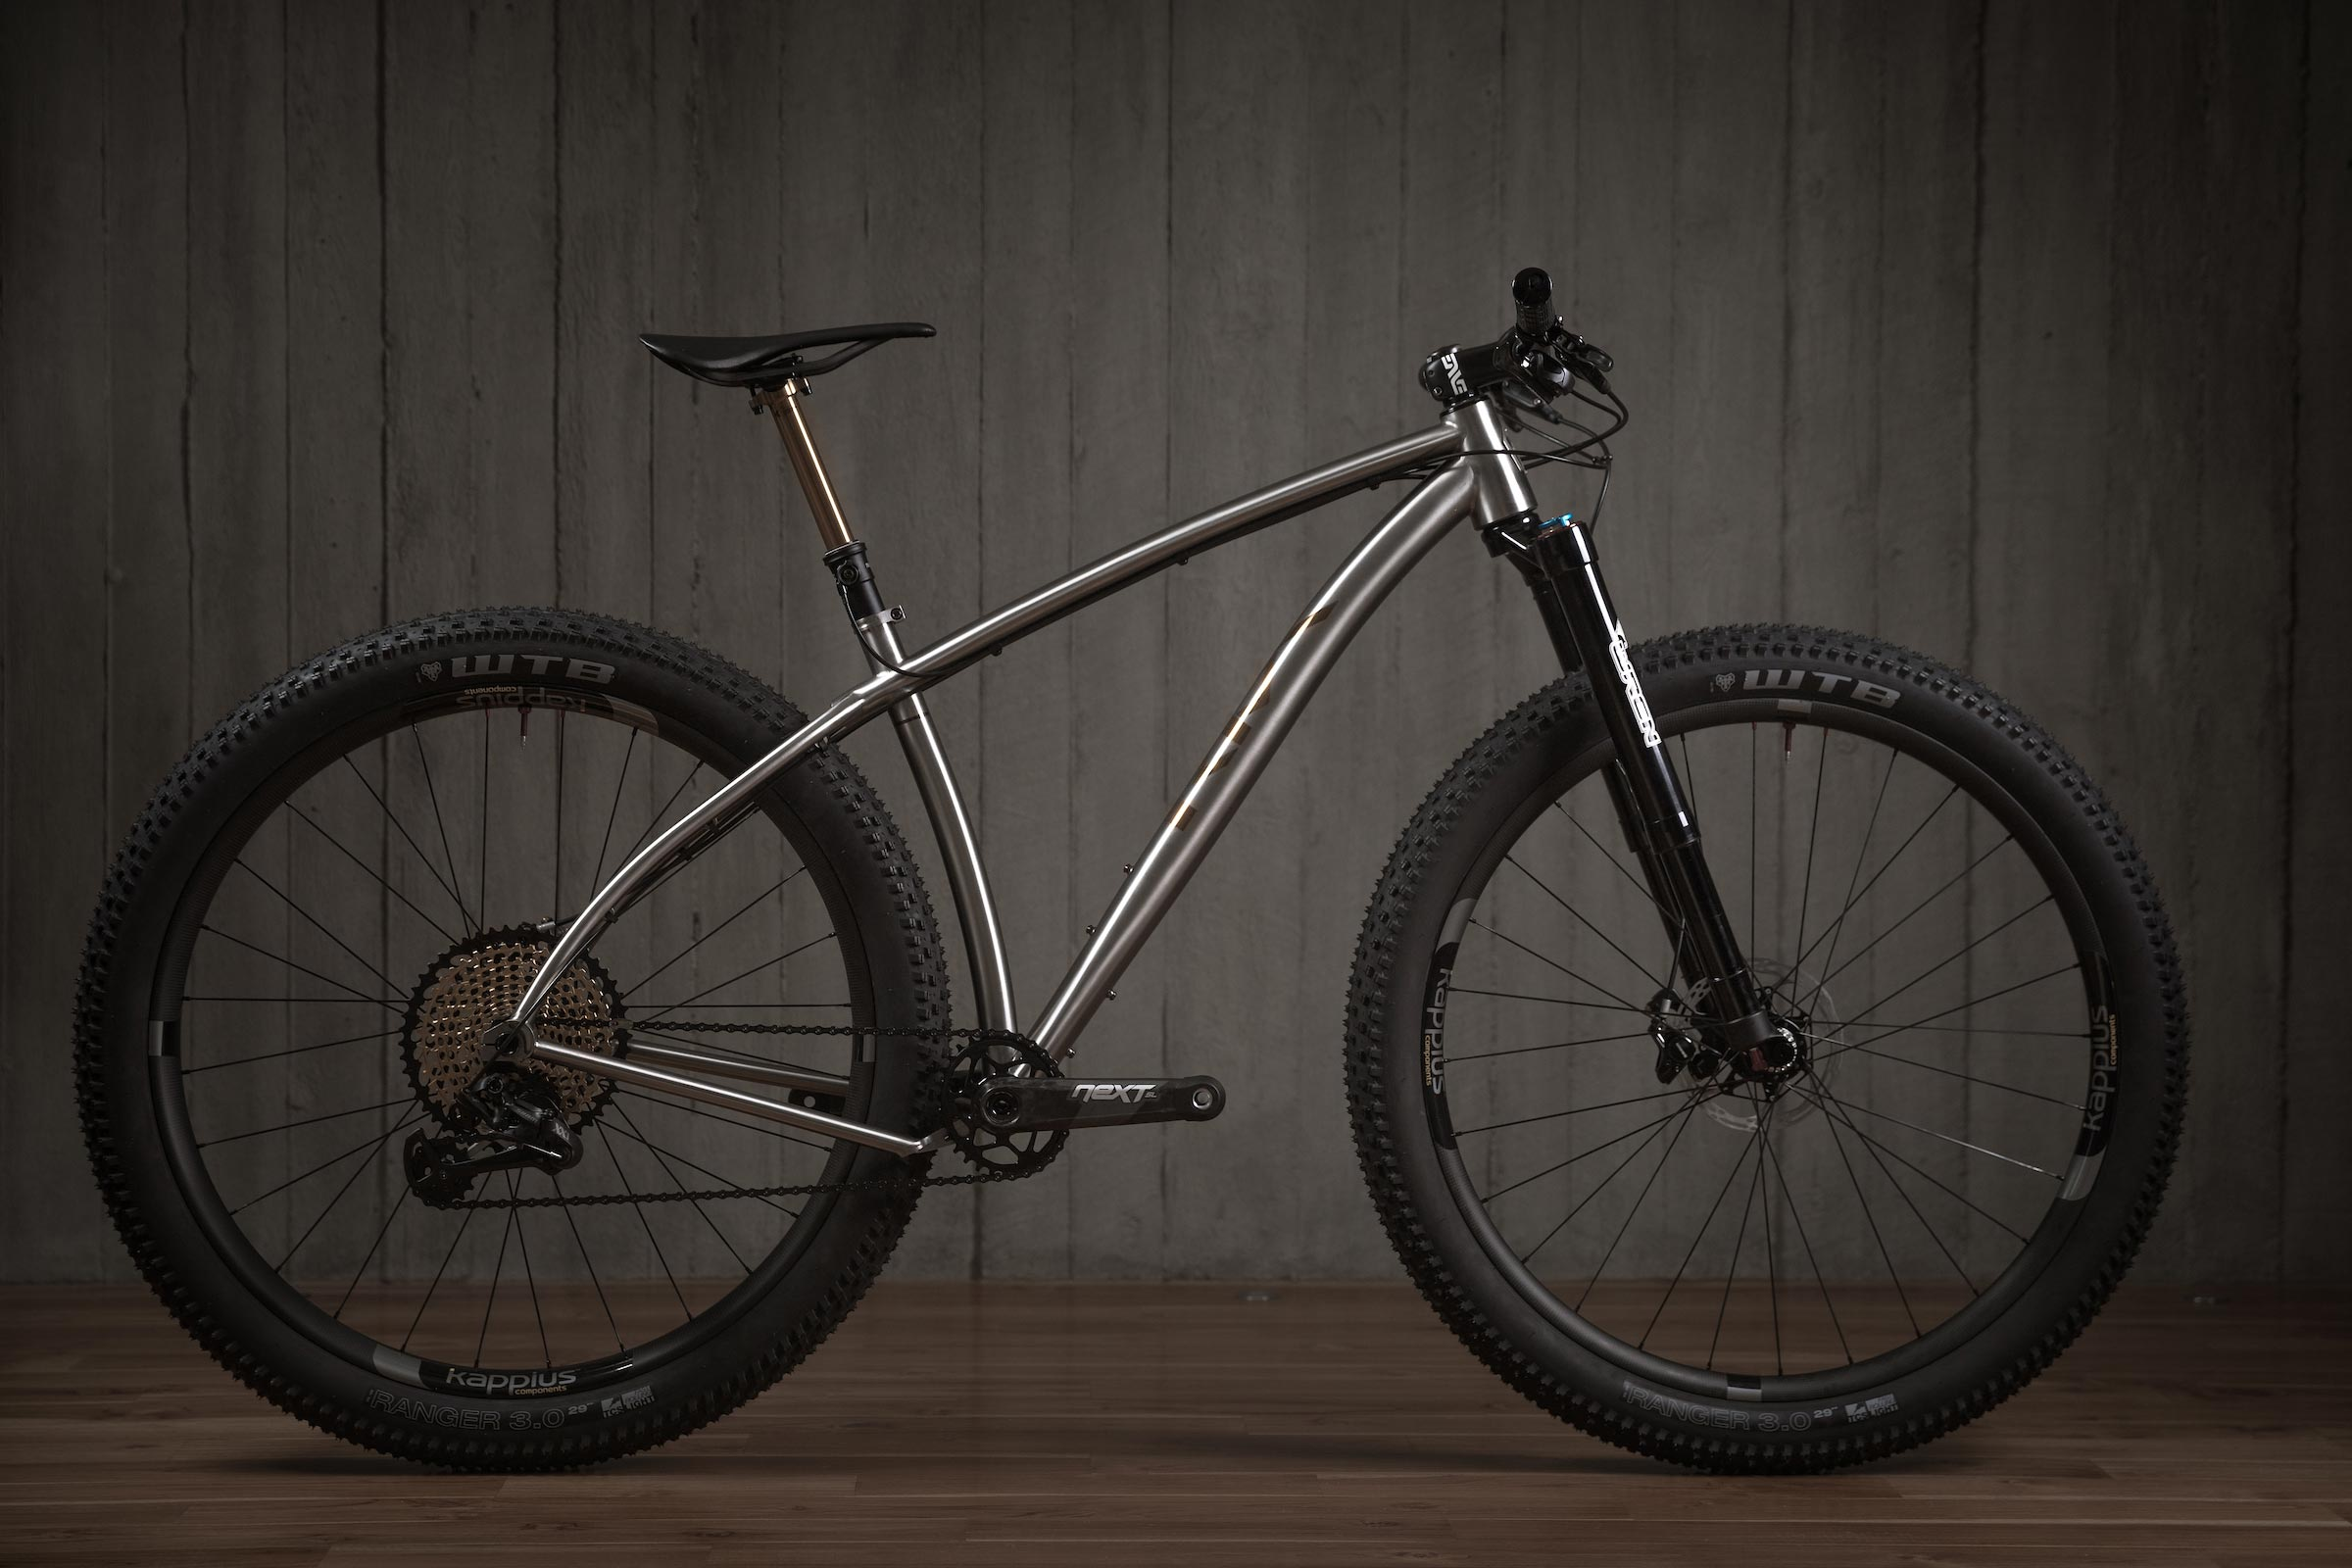 Rise Bikes Grizzly Titanium 29 plus Bike Profile